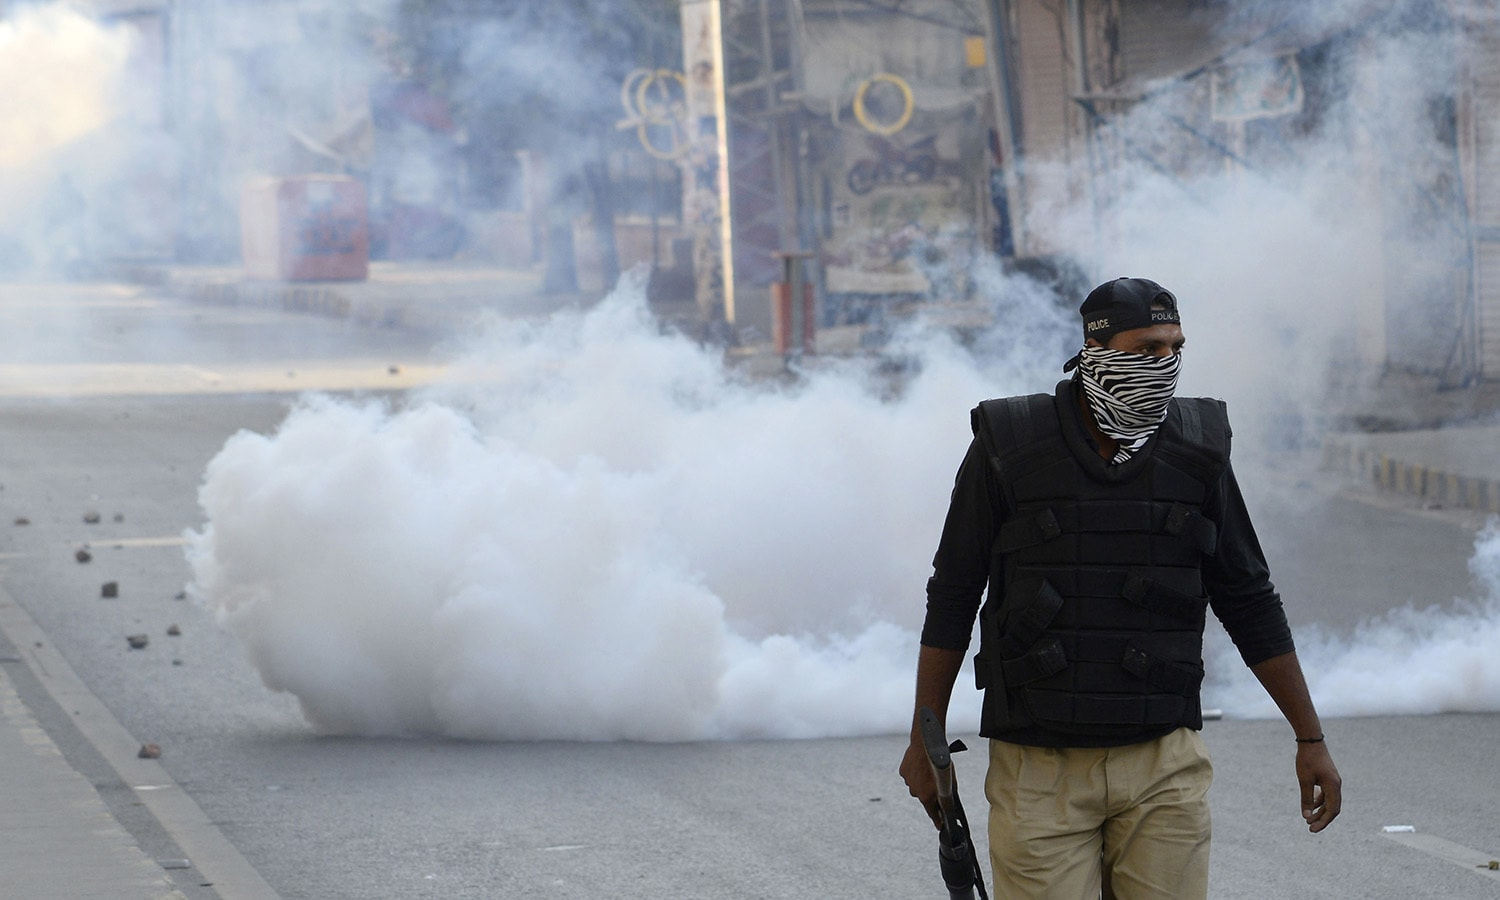 Uncertainty, teargas engulfs Rawalpindi as Nov 2 nears